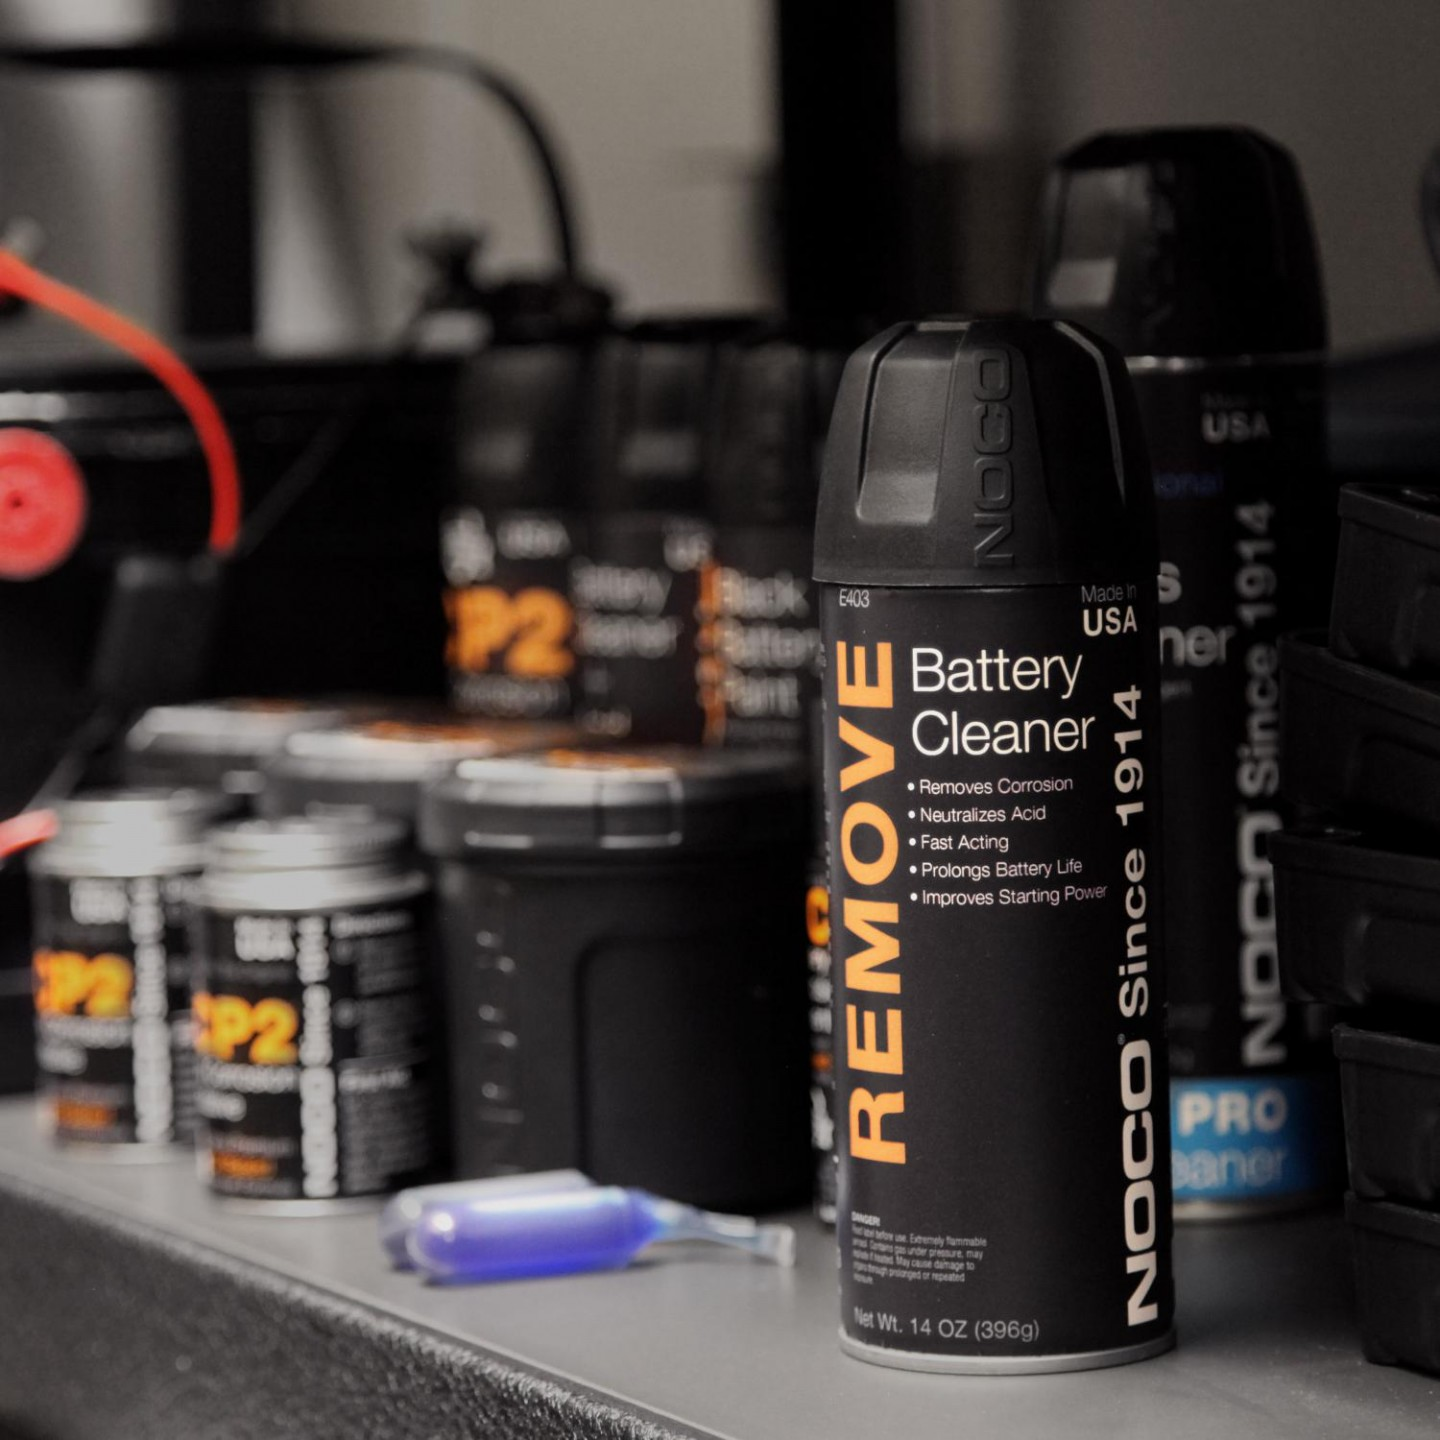 Remove Battery Cleaner